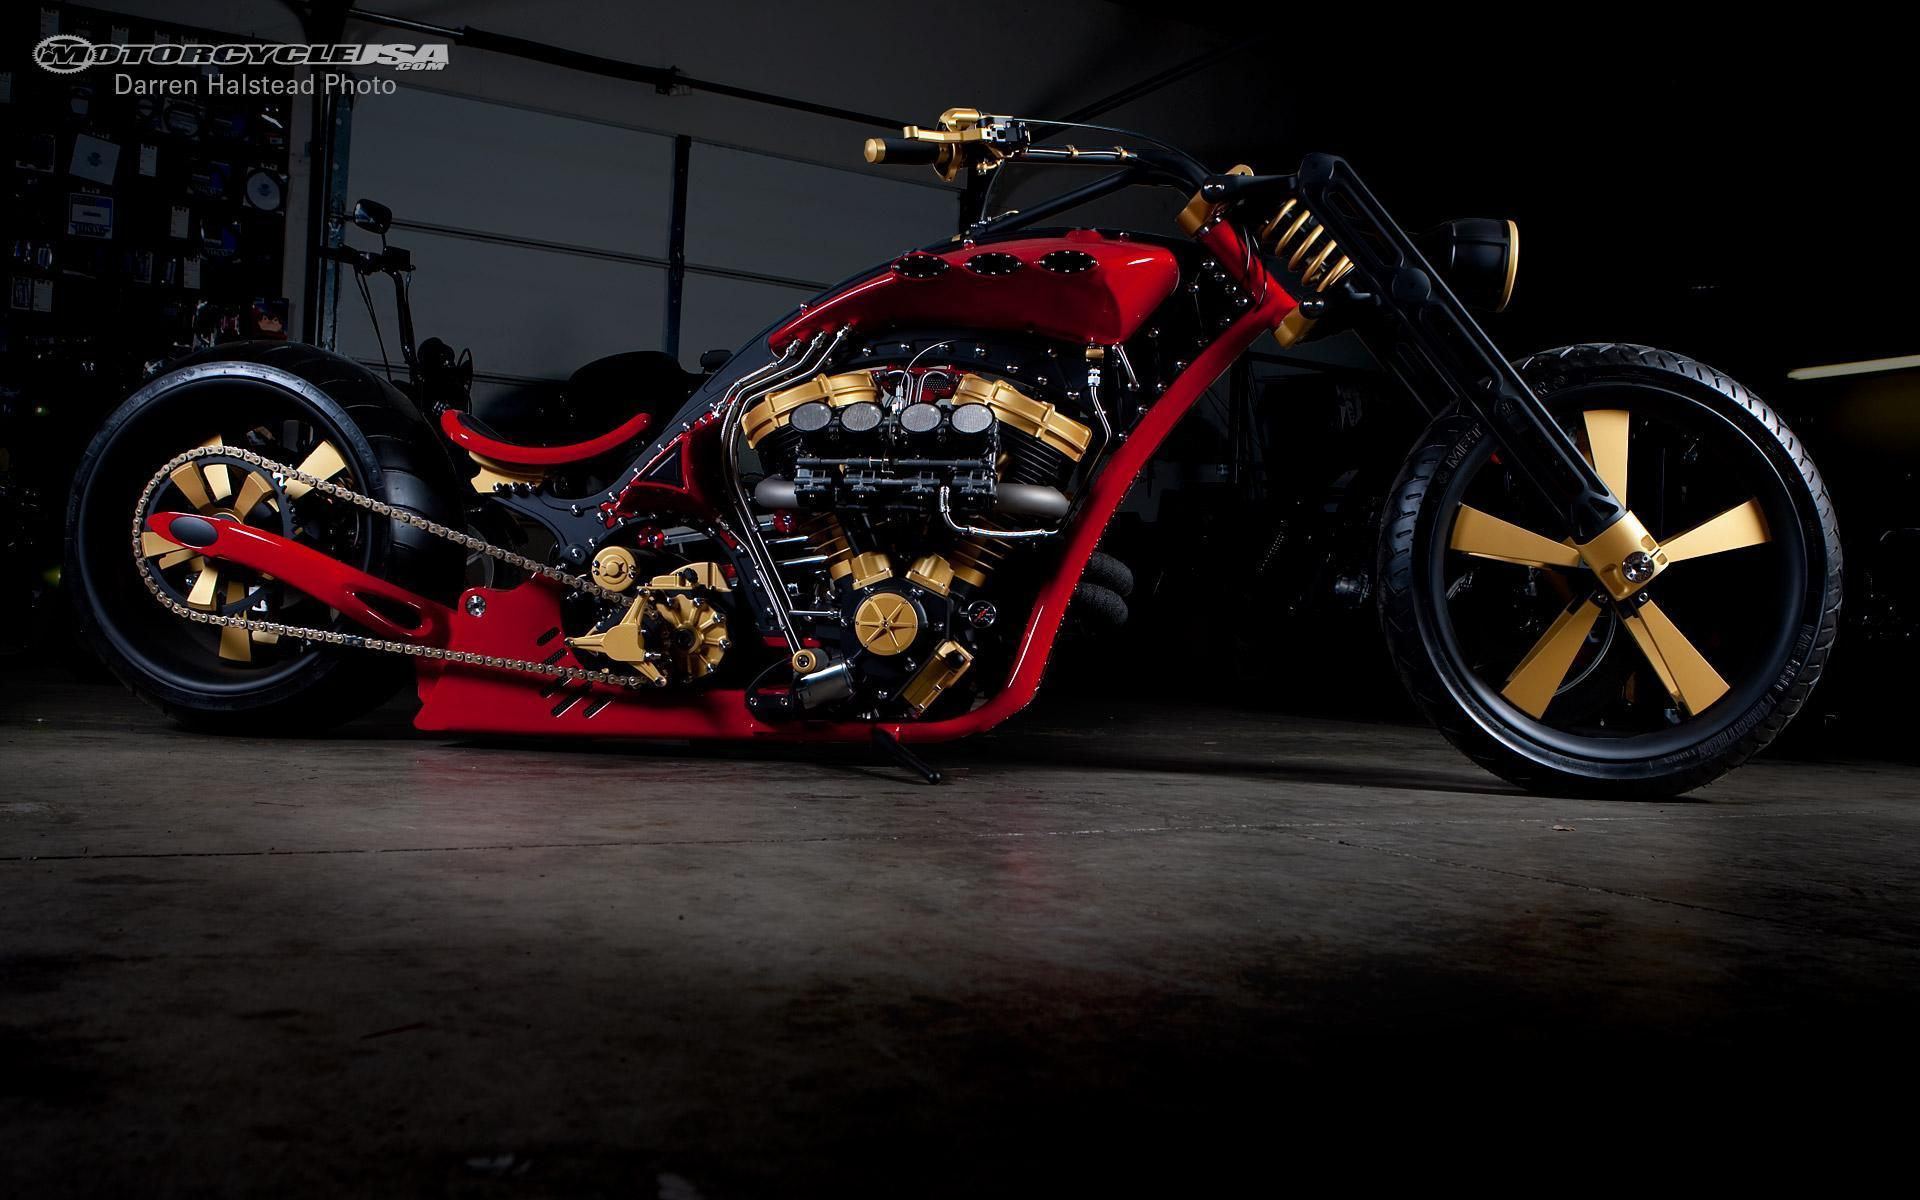 Harley Davidson Motorcycles Wallpapers - Full HD wallpaper search